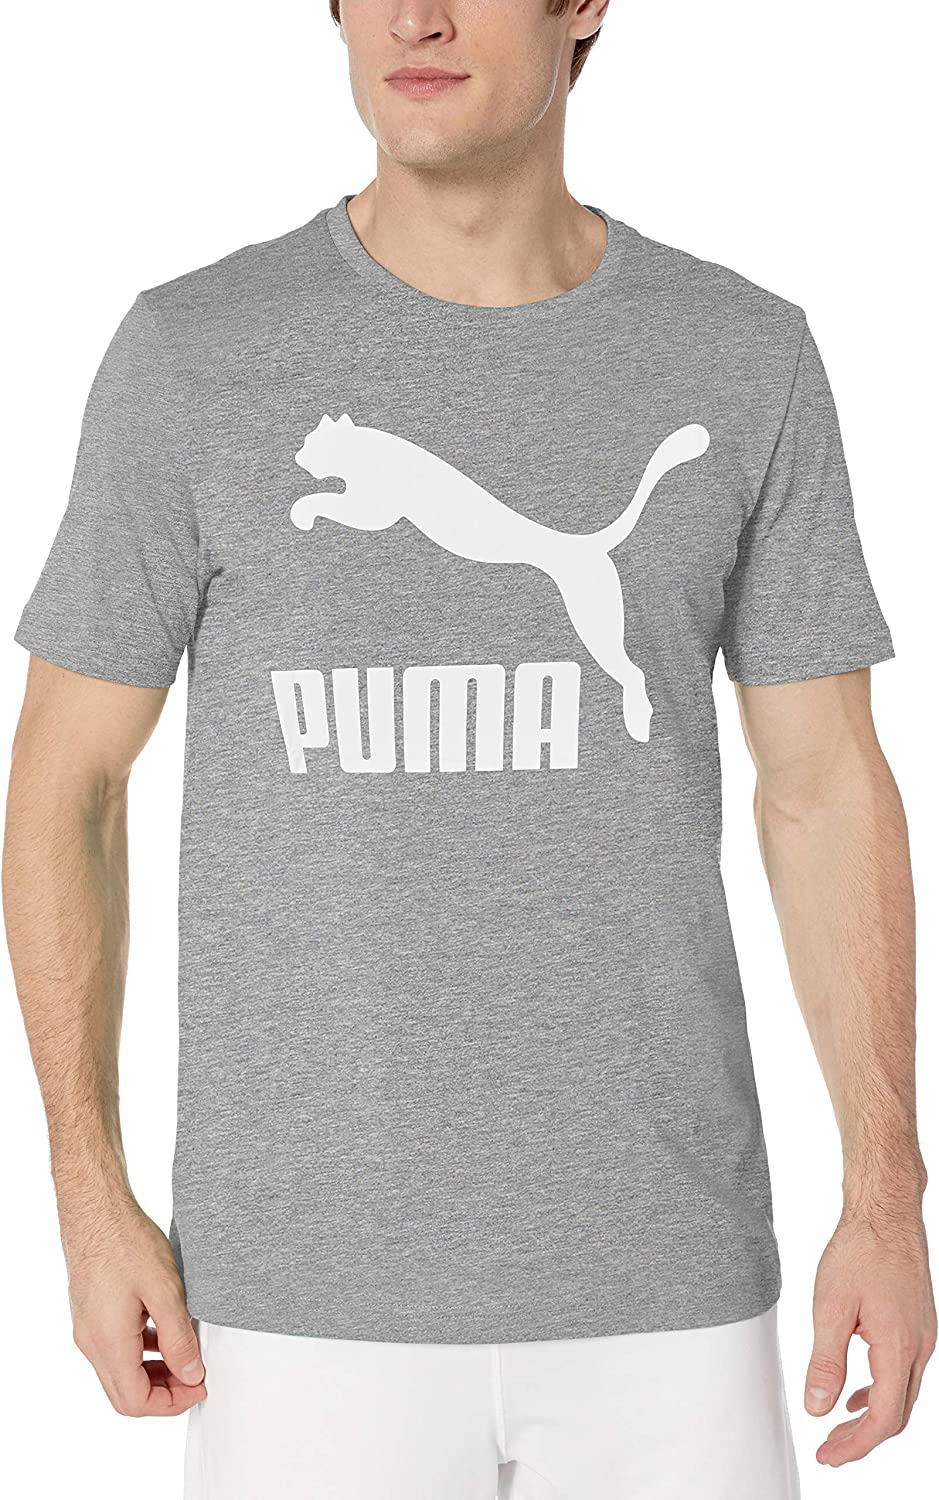 PUMA Men's Archive Purchase Life free shipping T-Shirt